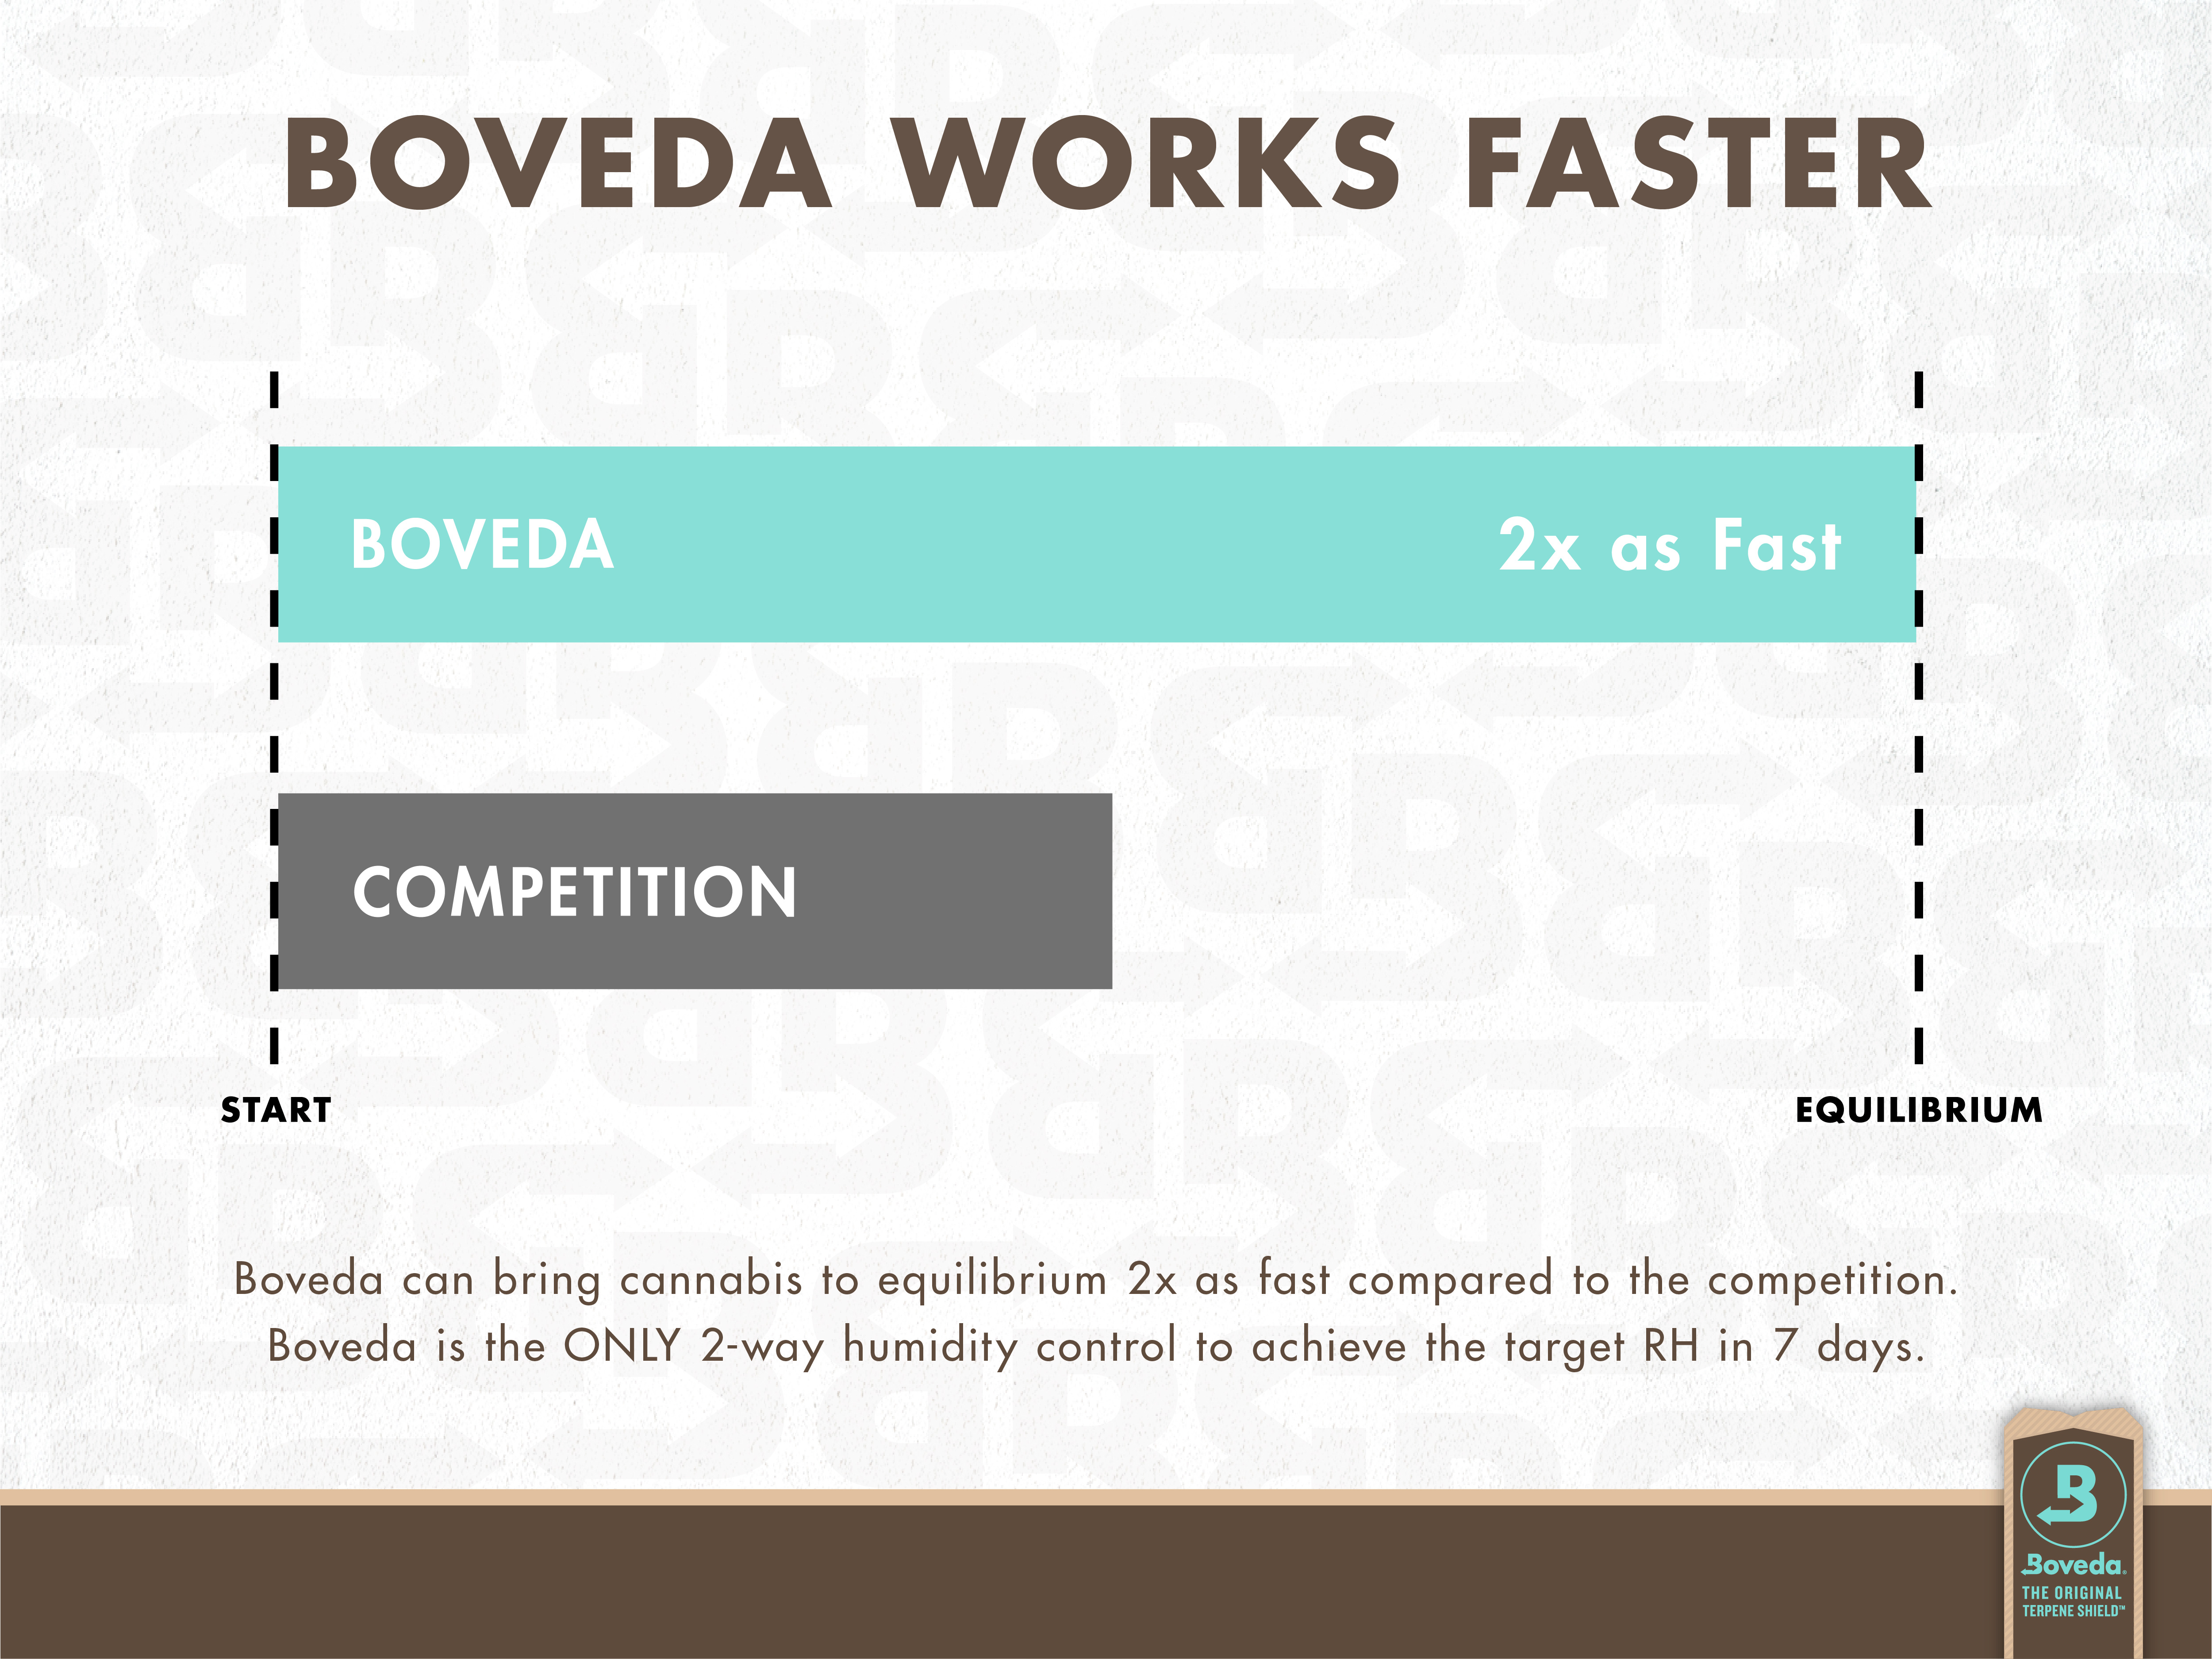 Boveda works faster. Boveda can bring cannabis to equilibrium two times as fast compared to the competition.